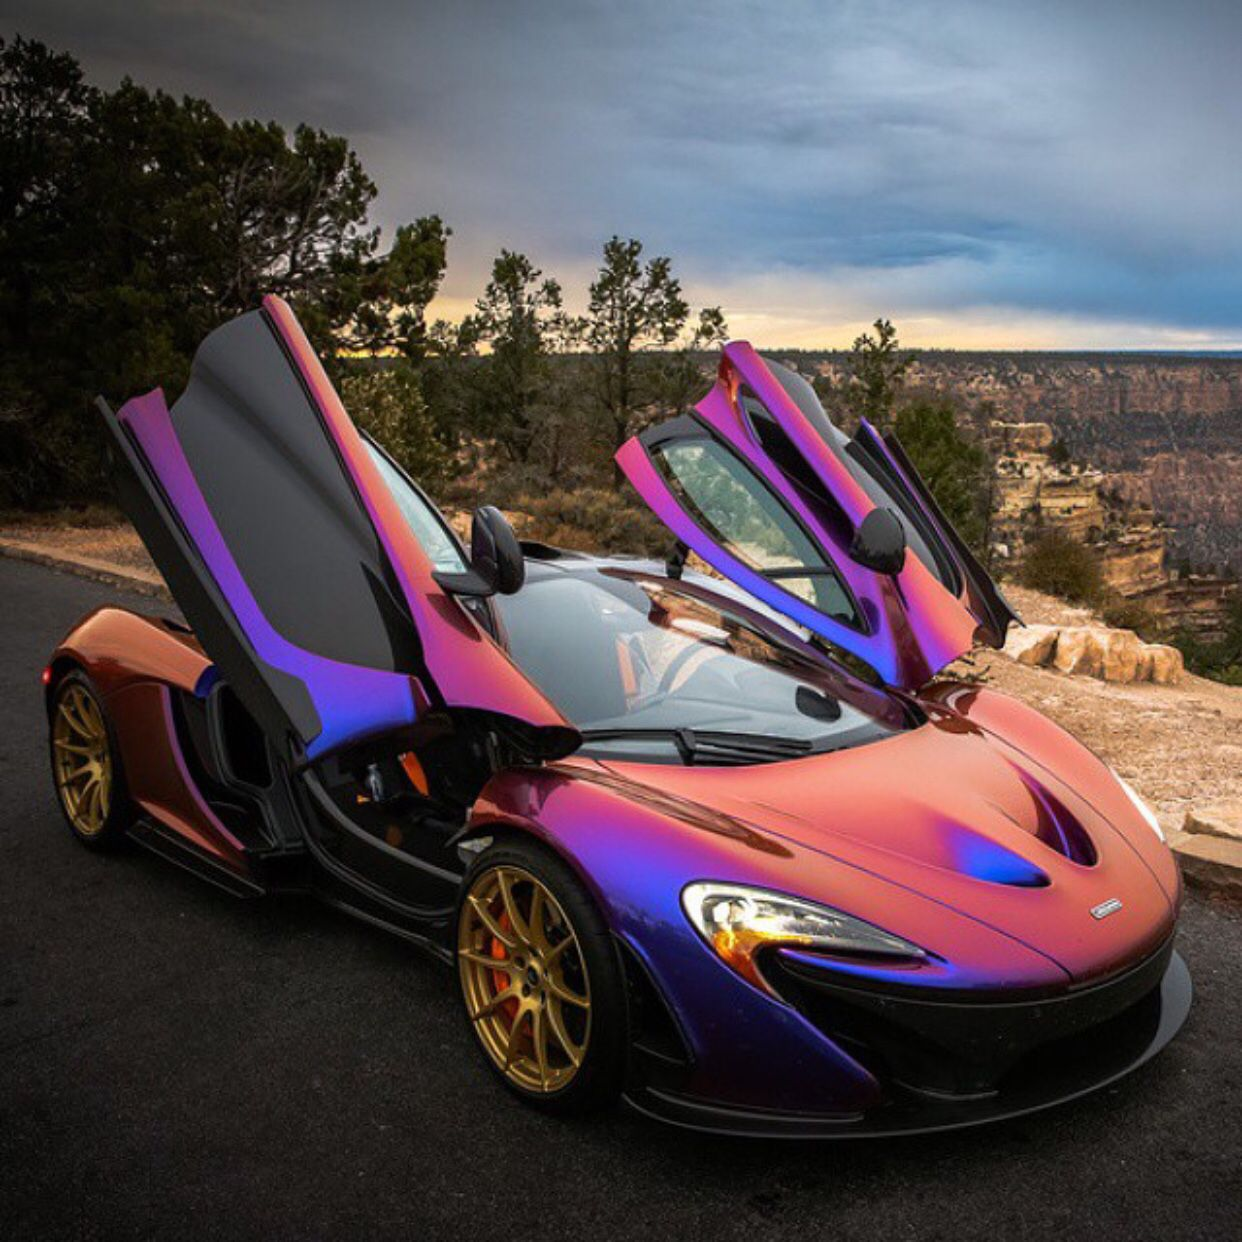 Mso mclaren p1 painted in cerberus pearl photo taken by mso mclaren p1 painted in cerberus pearl photo taken by shmee150 on fandeluxe Images